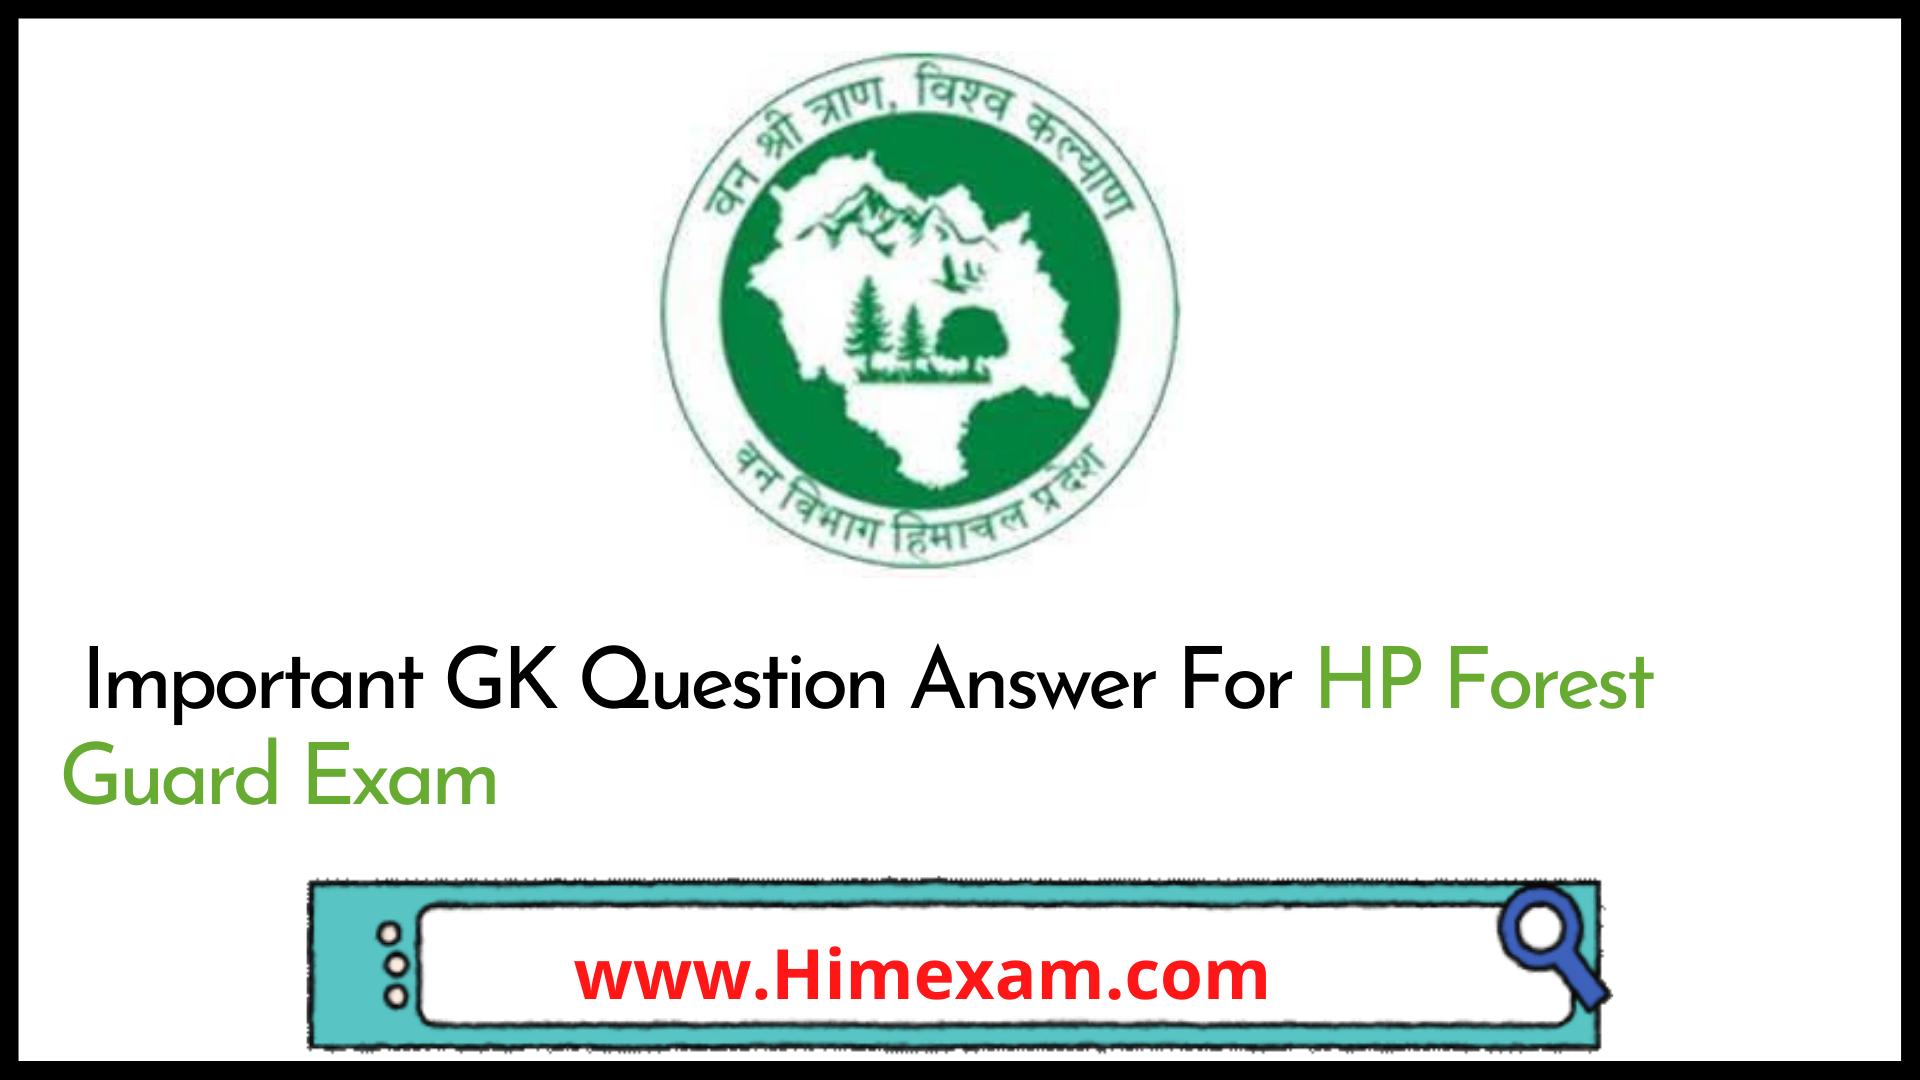 Important GK Question Answer For HP Forest Guard Exam